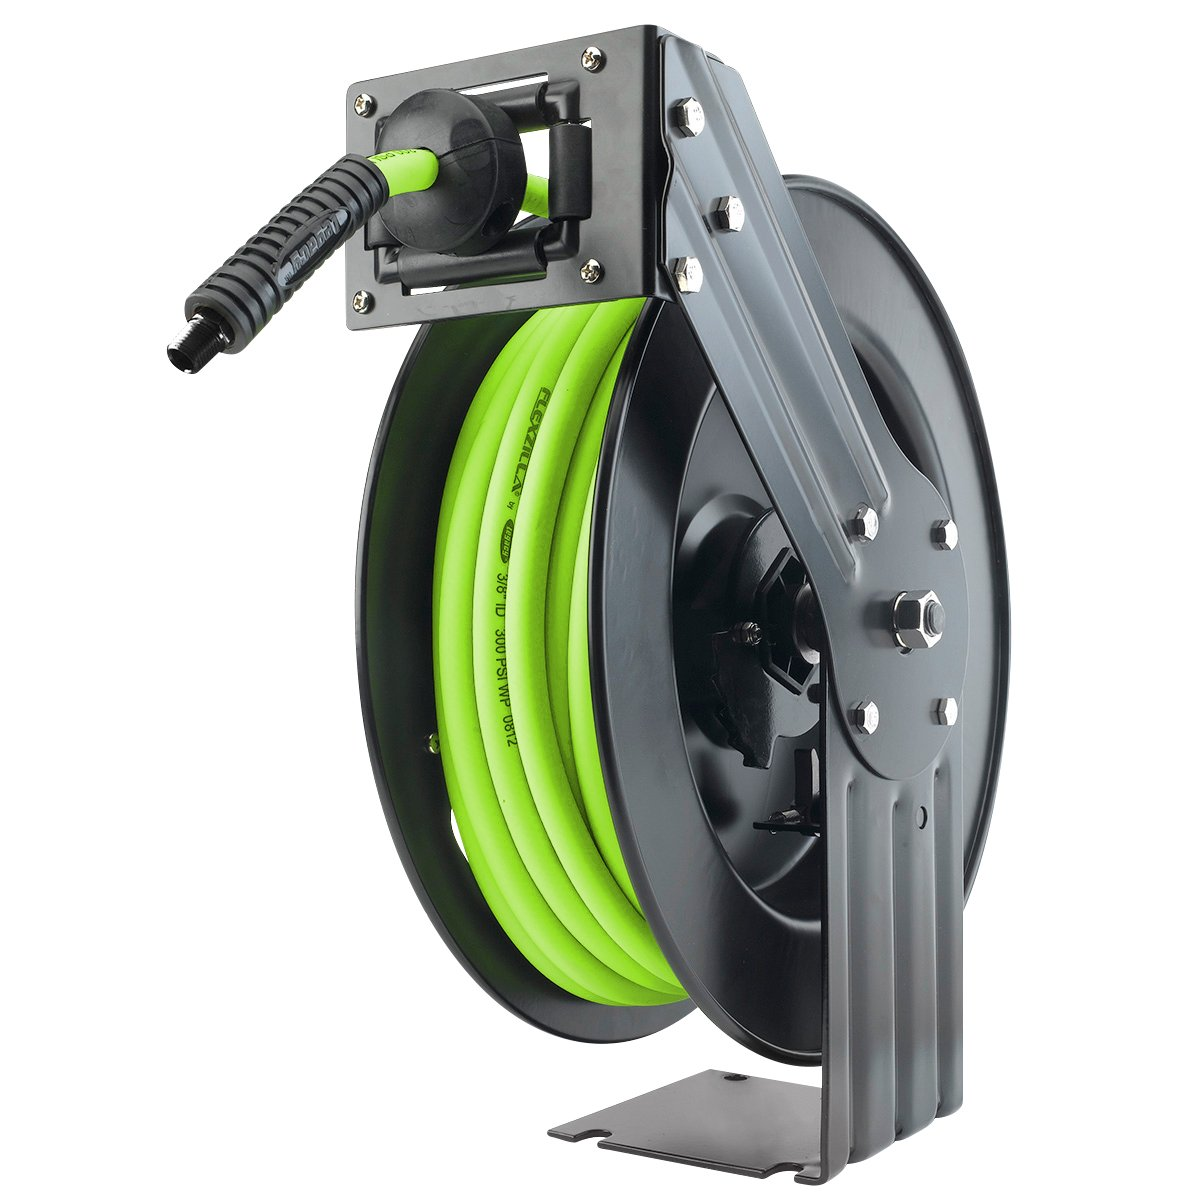 Flexzilla Open Face Retractable Air Hose Reel, 3/8 in. x 50 ft., Heavy Duty, Lightweight, Hybrid, ZillaGreen - L8611FZ by Flexzilla (Image #1)